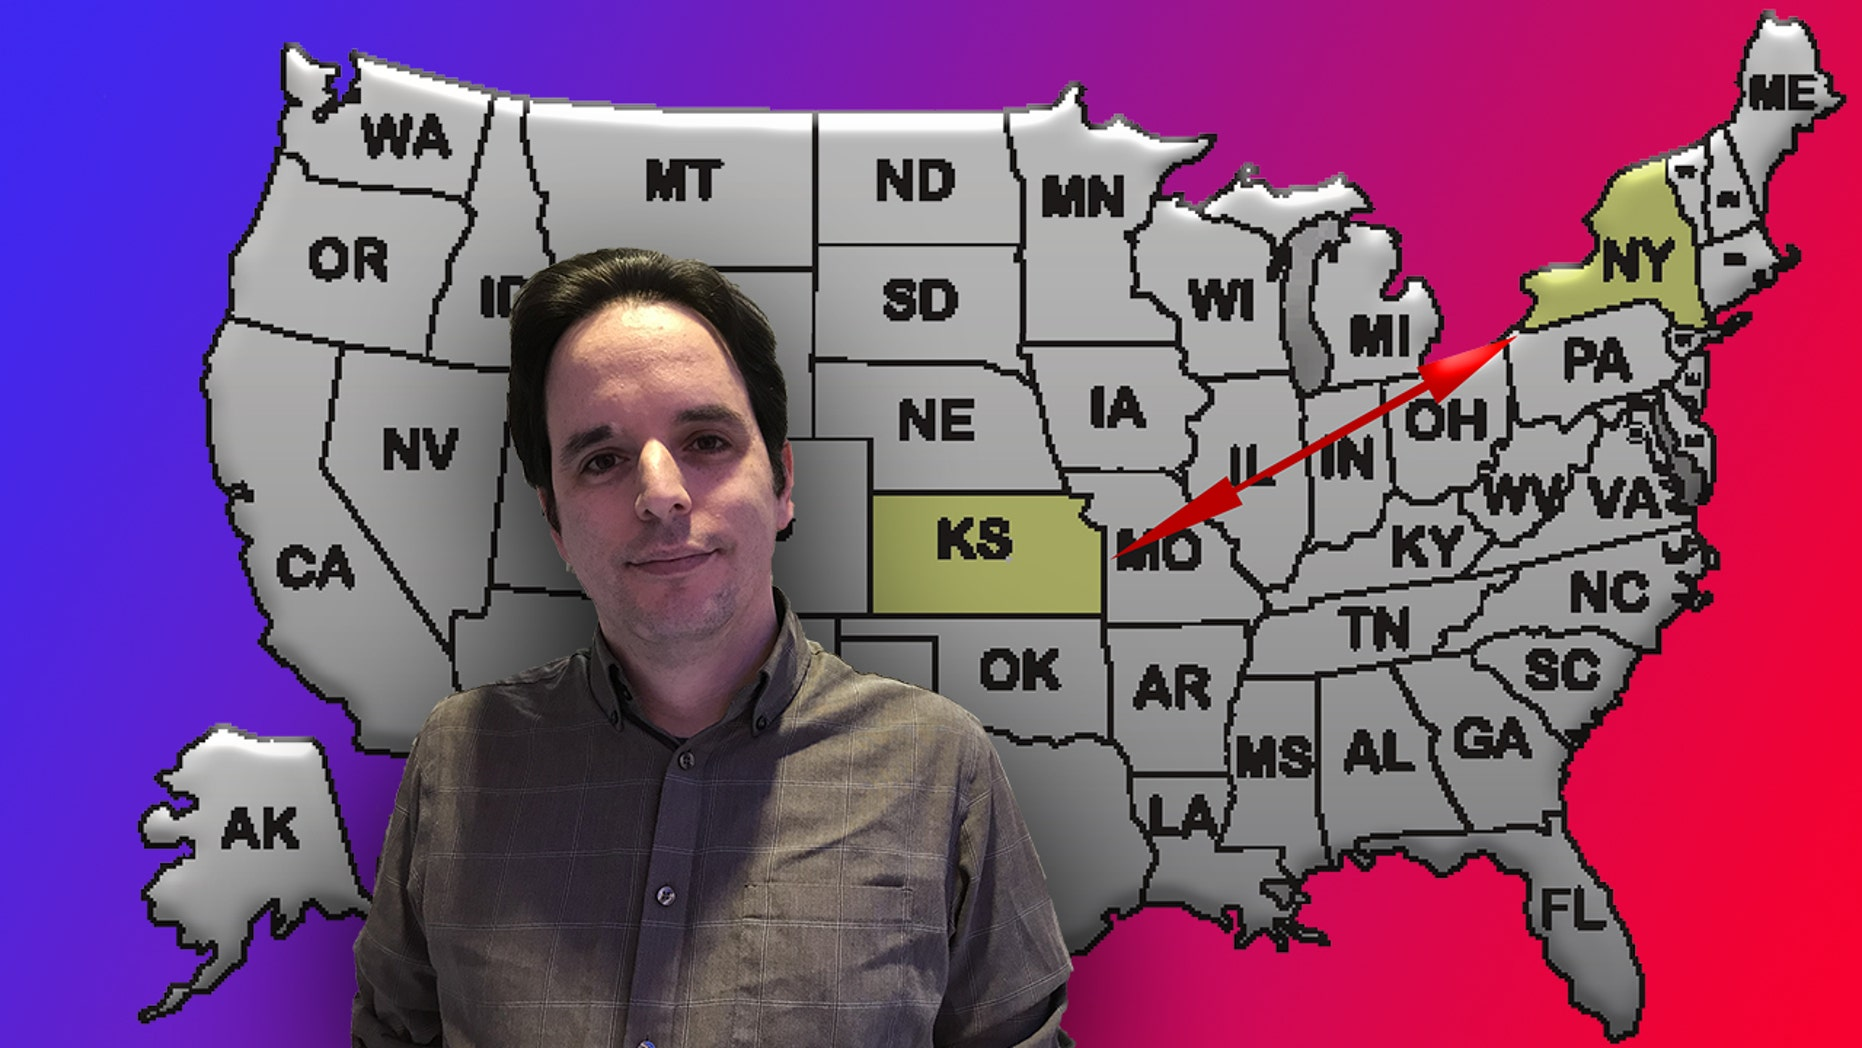 Lifelong New Yorker Andy Maskin wants to become the governor of Kansas thanks to a loophole about residency requirements.